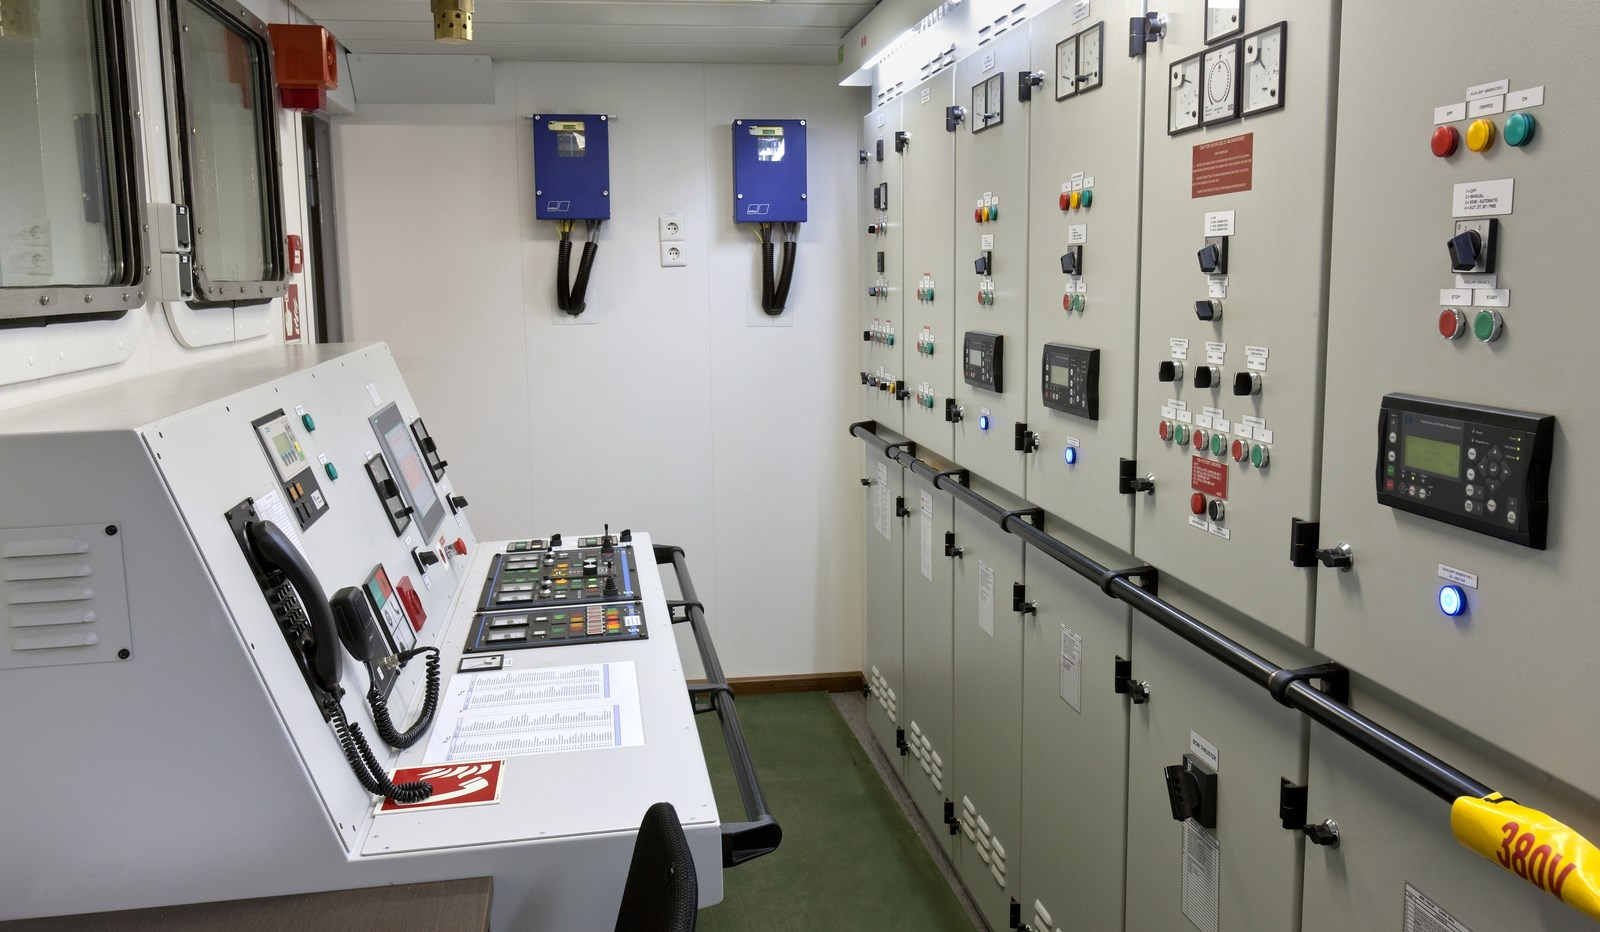 18 Kts Speed Offshore Patrol Vessel 1000 For 45 Crew Persons Switchboard Wiring Nz Engine Control And Room On